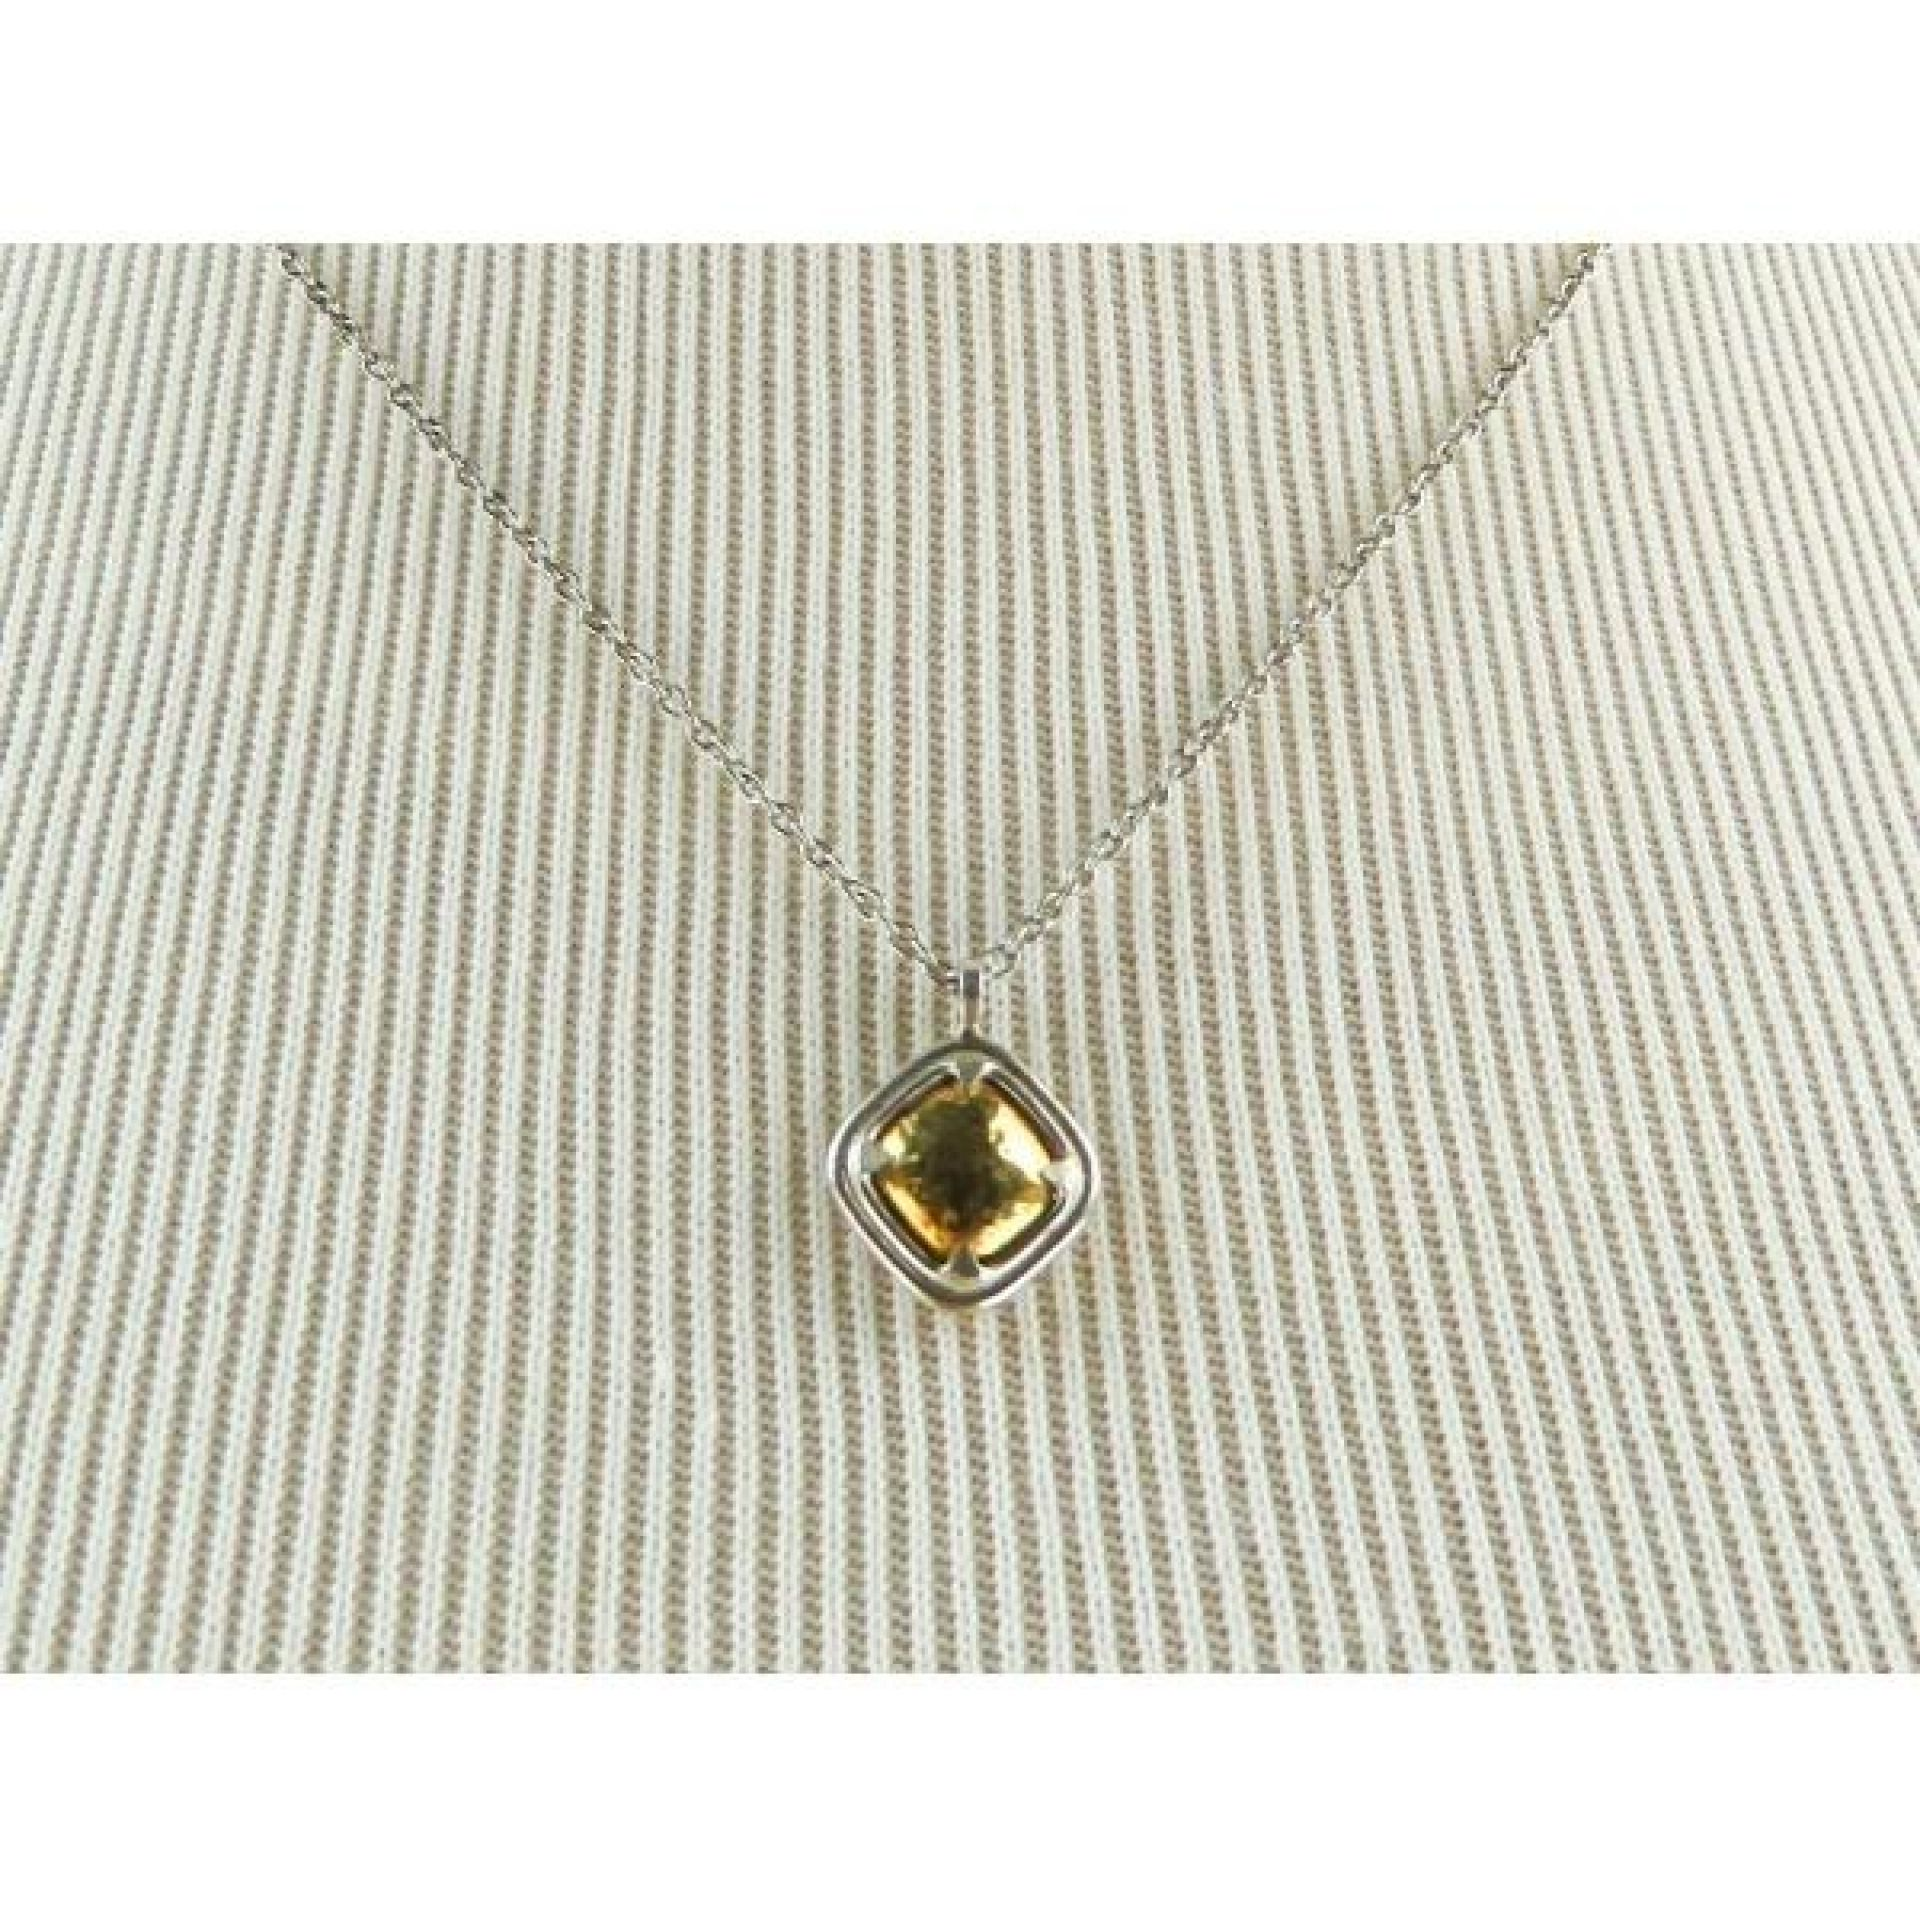 John Hardy 18K Gold Sterling Silver Hammered Square Pendant Necklace